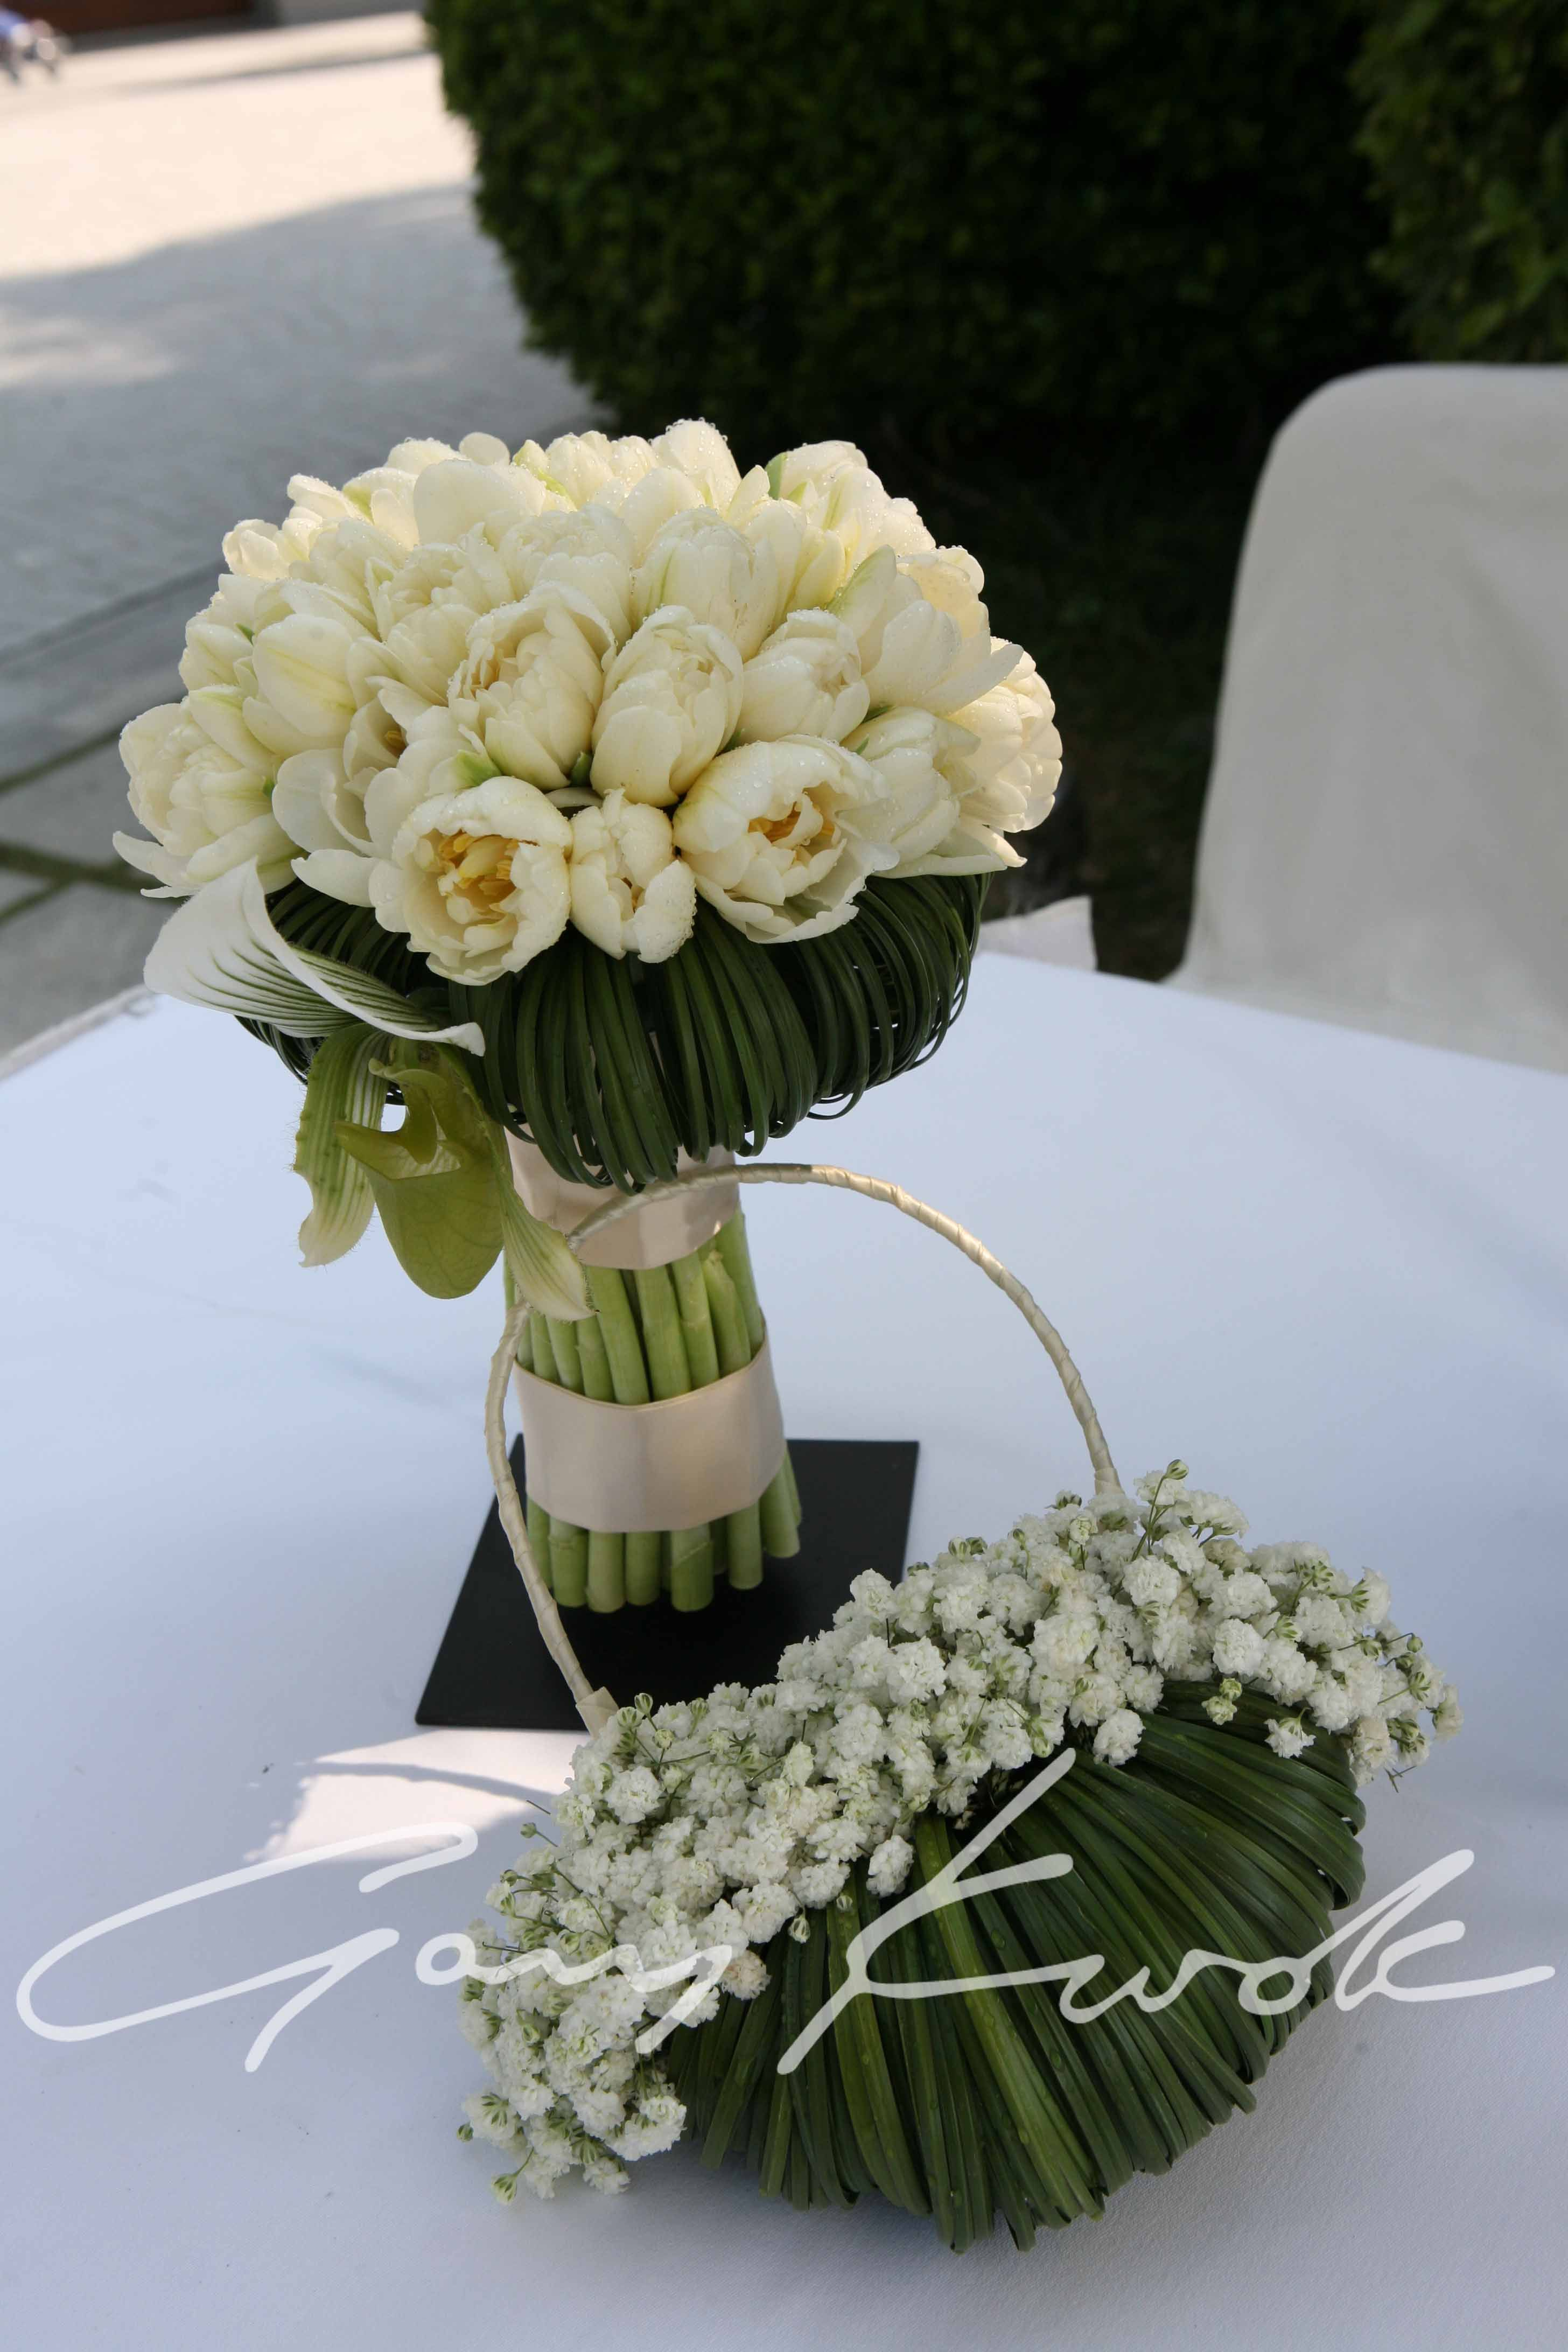 The Stylish White Green Bridal Bouquet With The Best Flower Basket